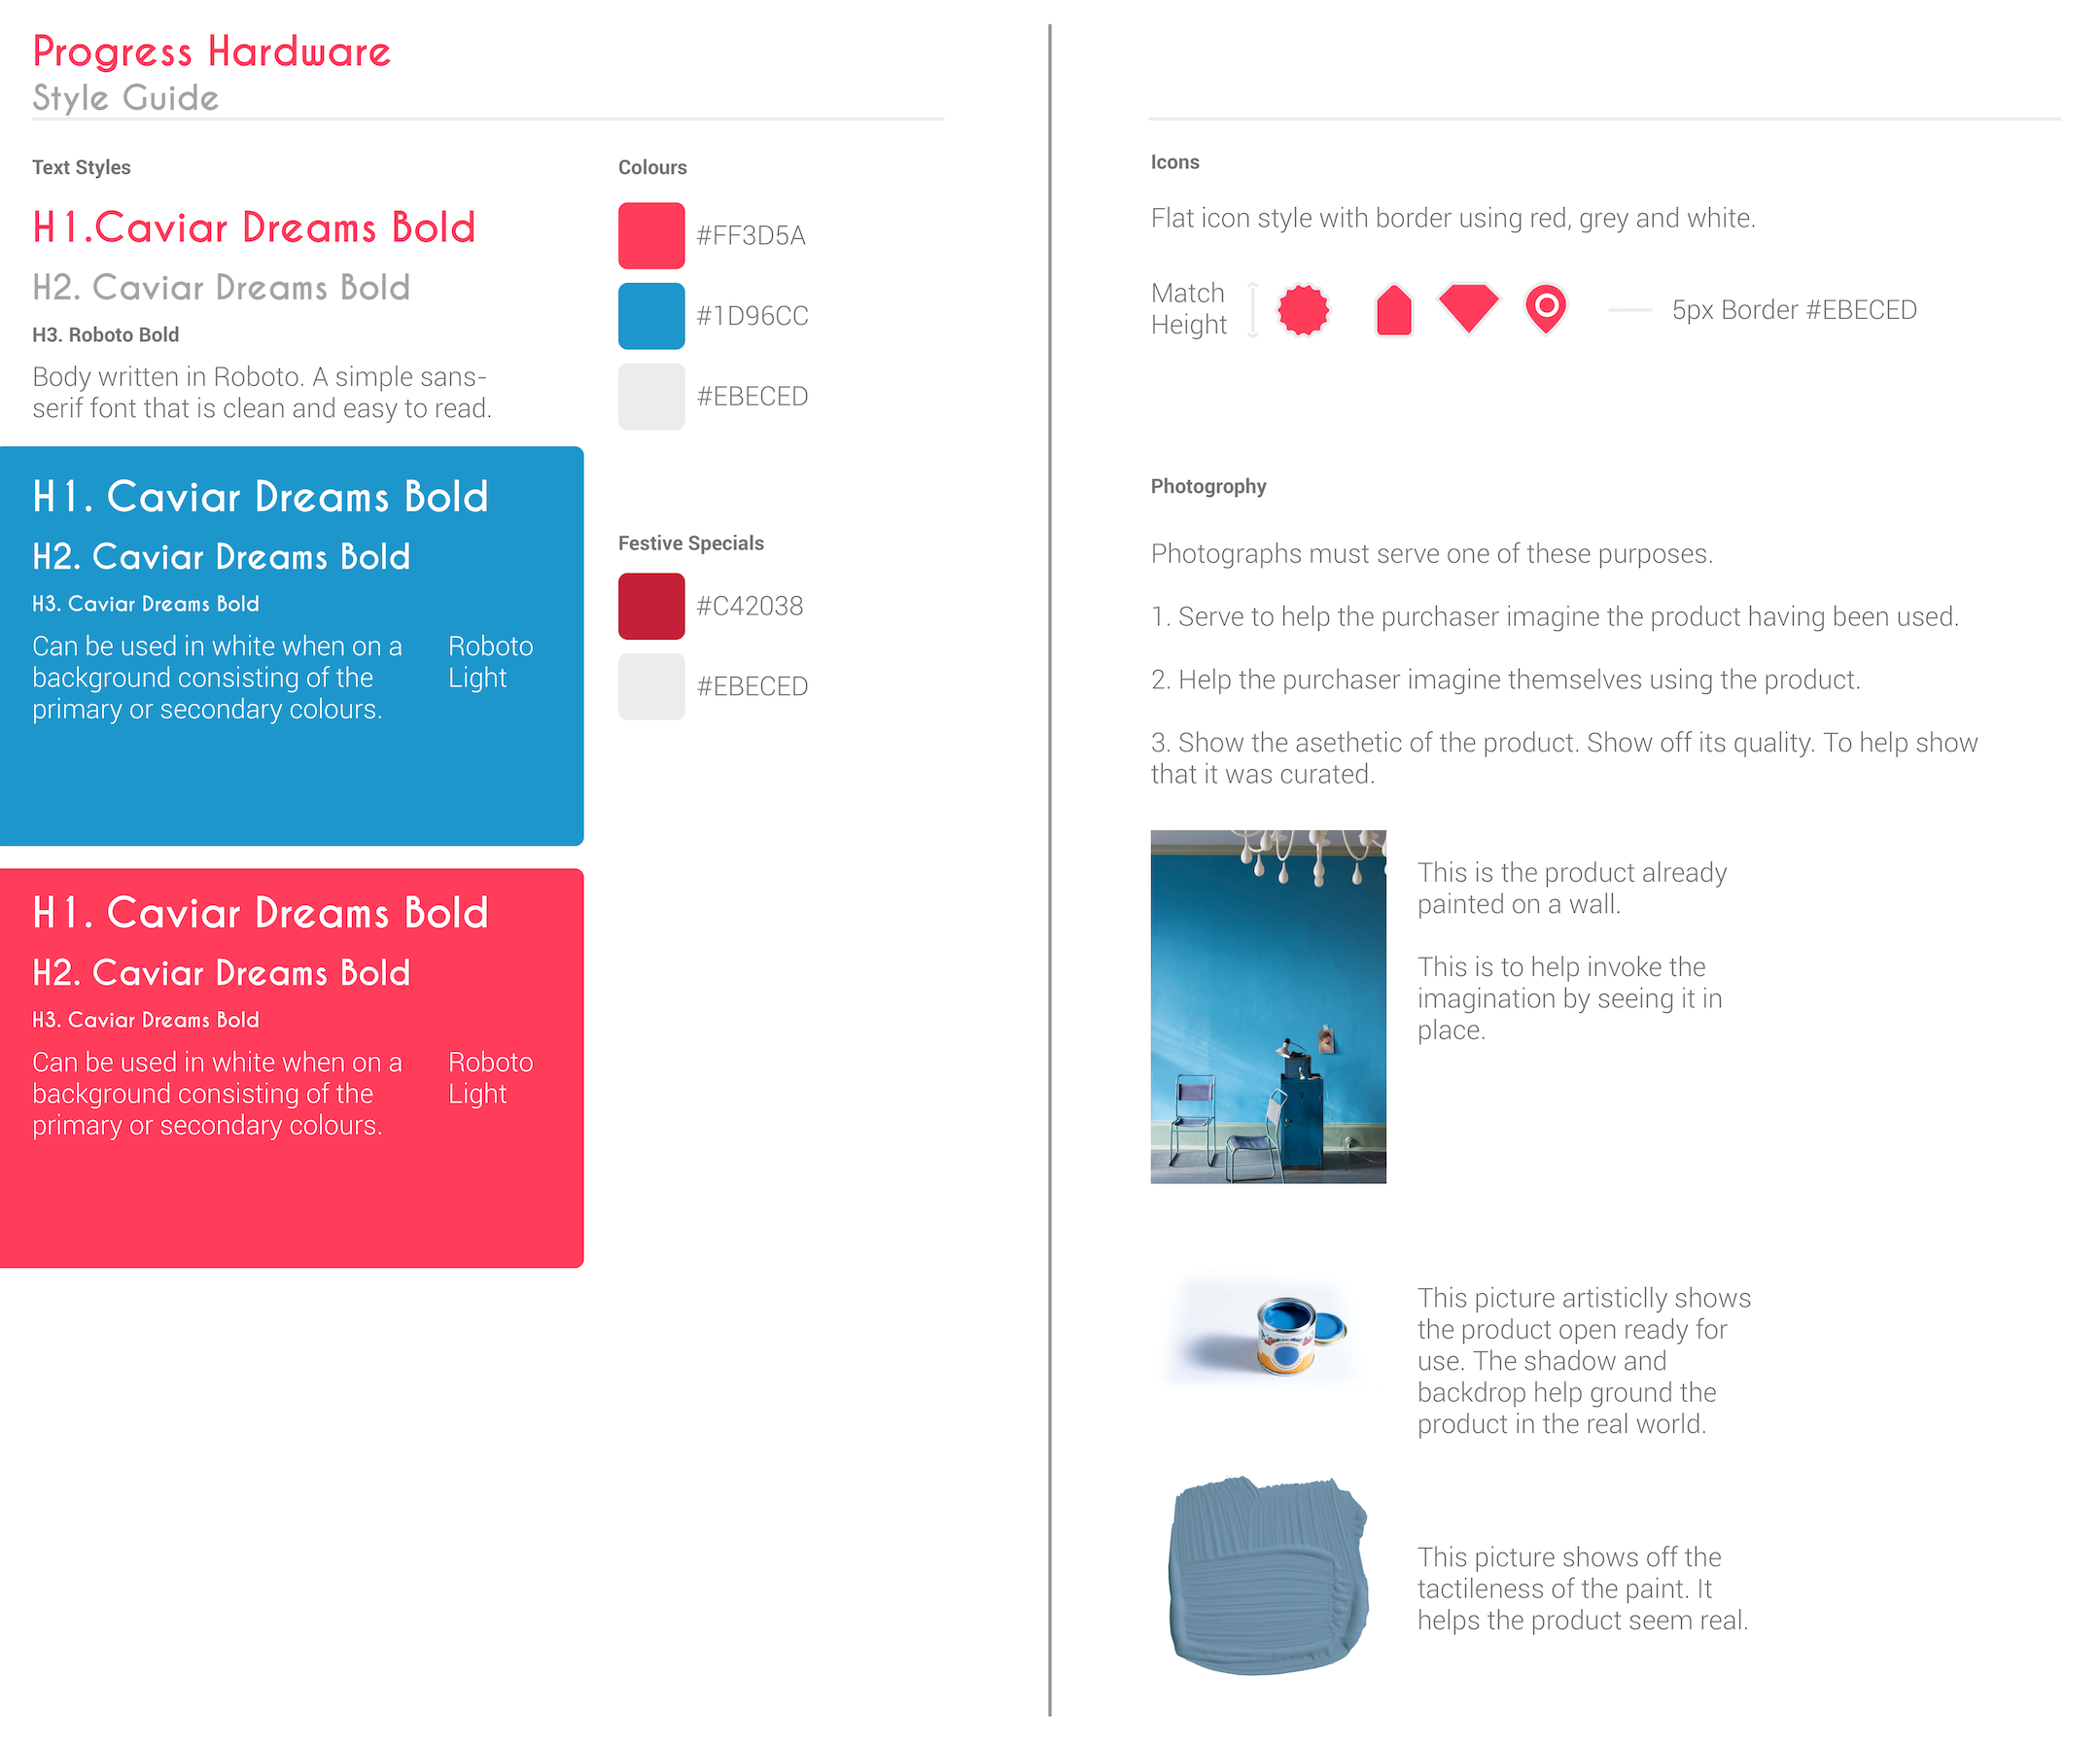 Artboard showing the style guides for the website.